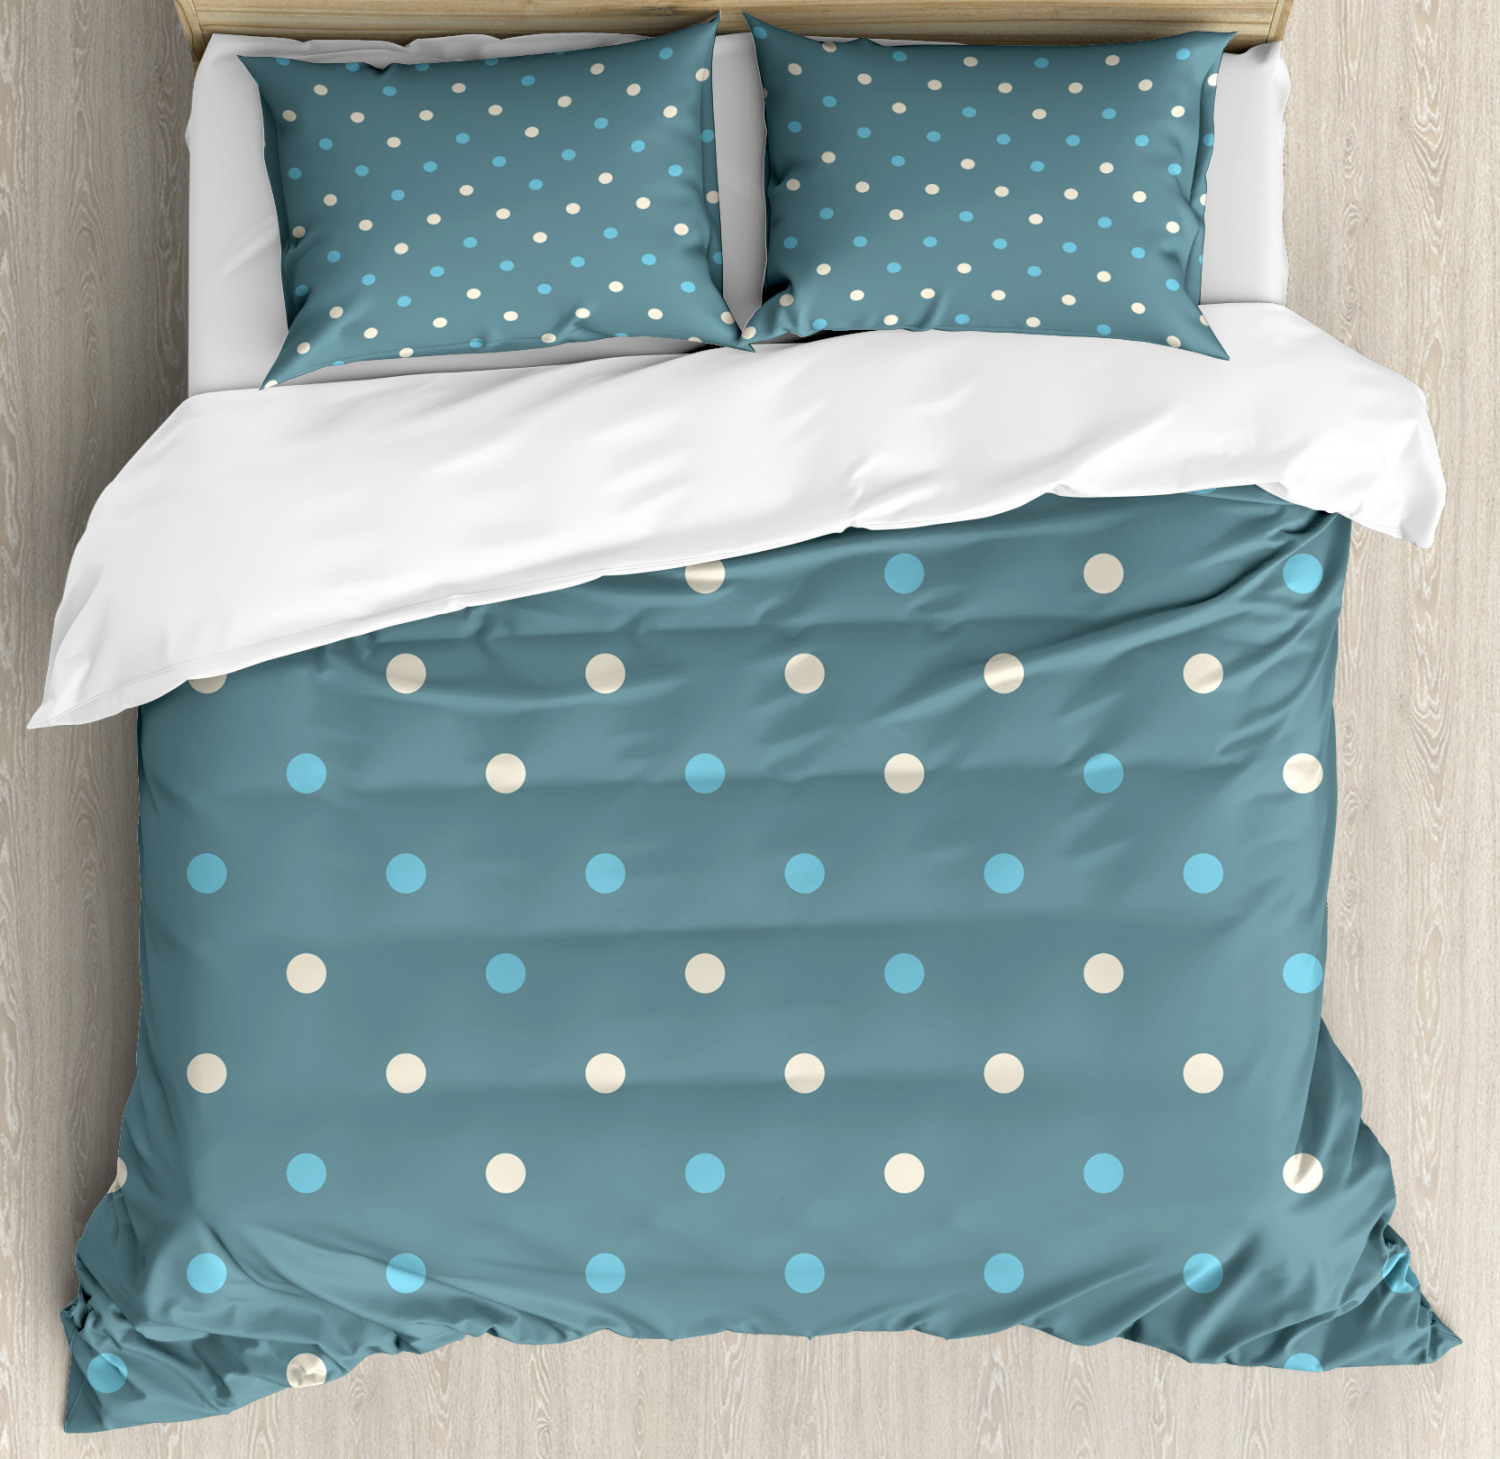 Geometric Duvet Cover Set with Pillow Shams Spotted West Motifs Print